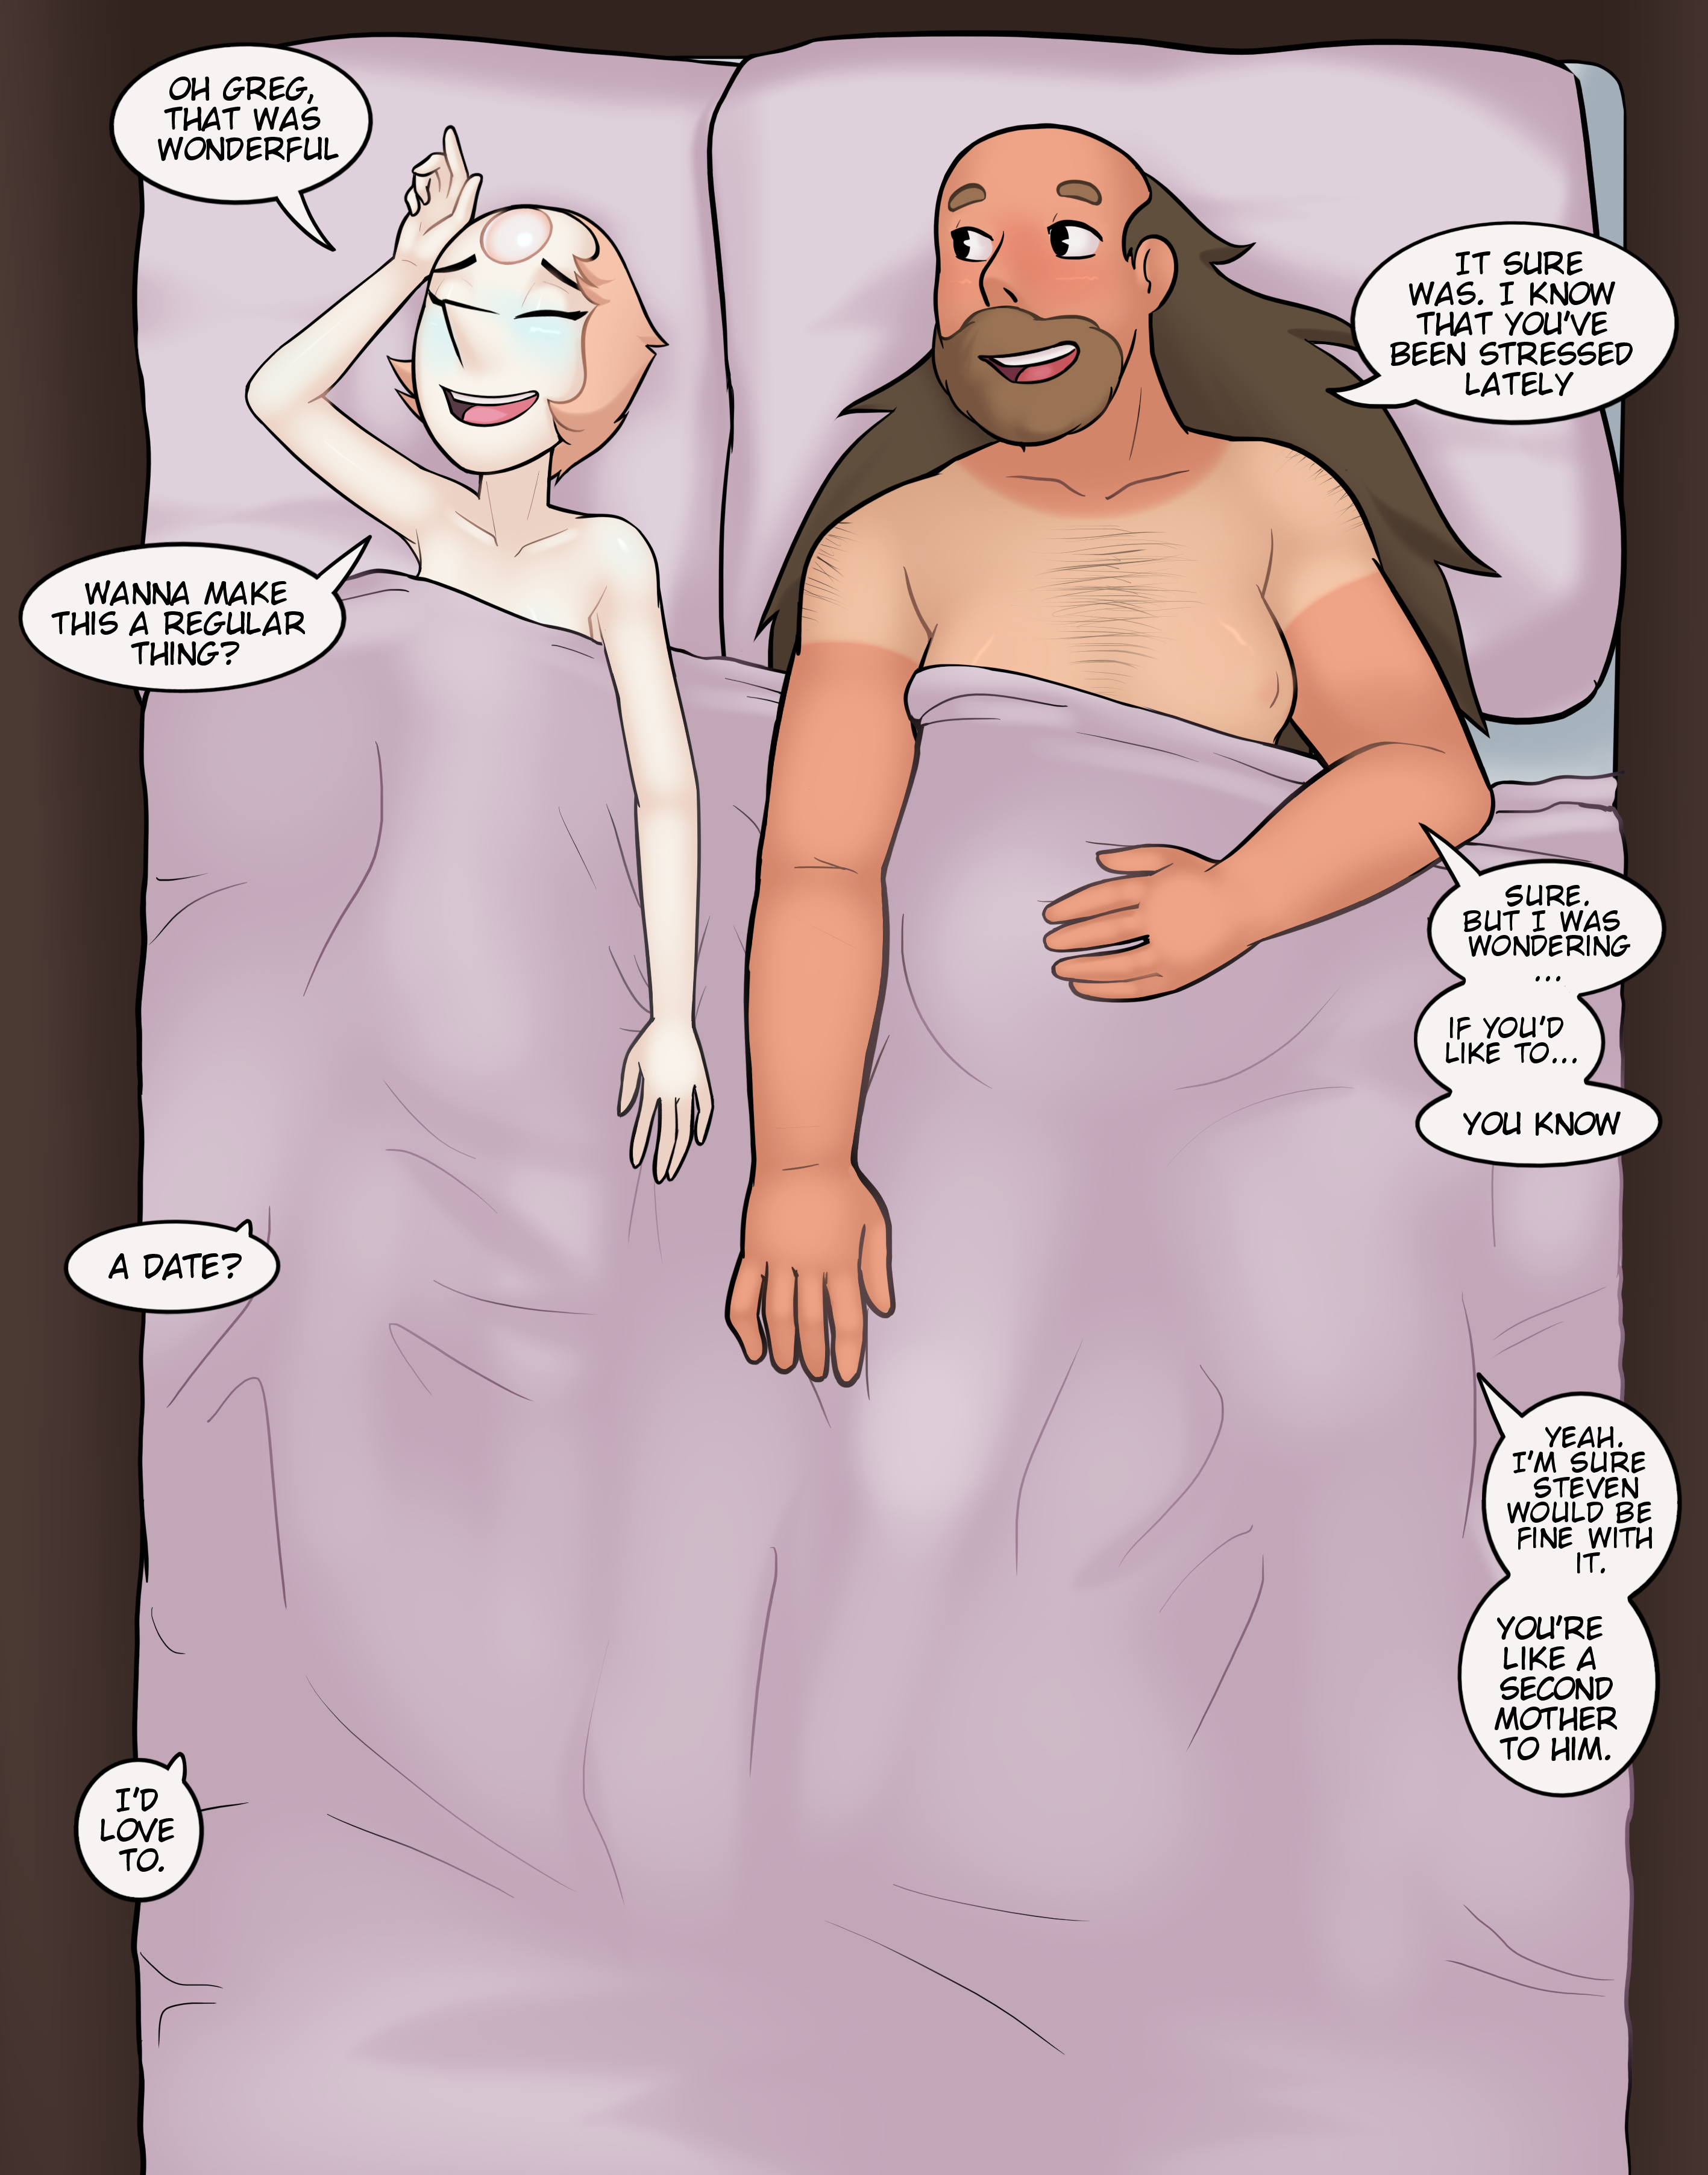 Aftergreg (Under Covers)